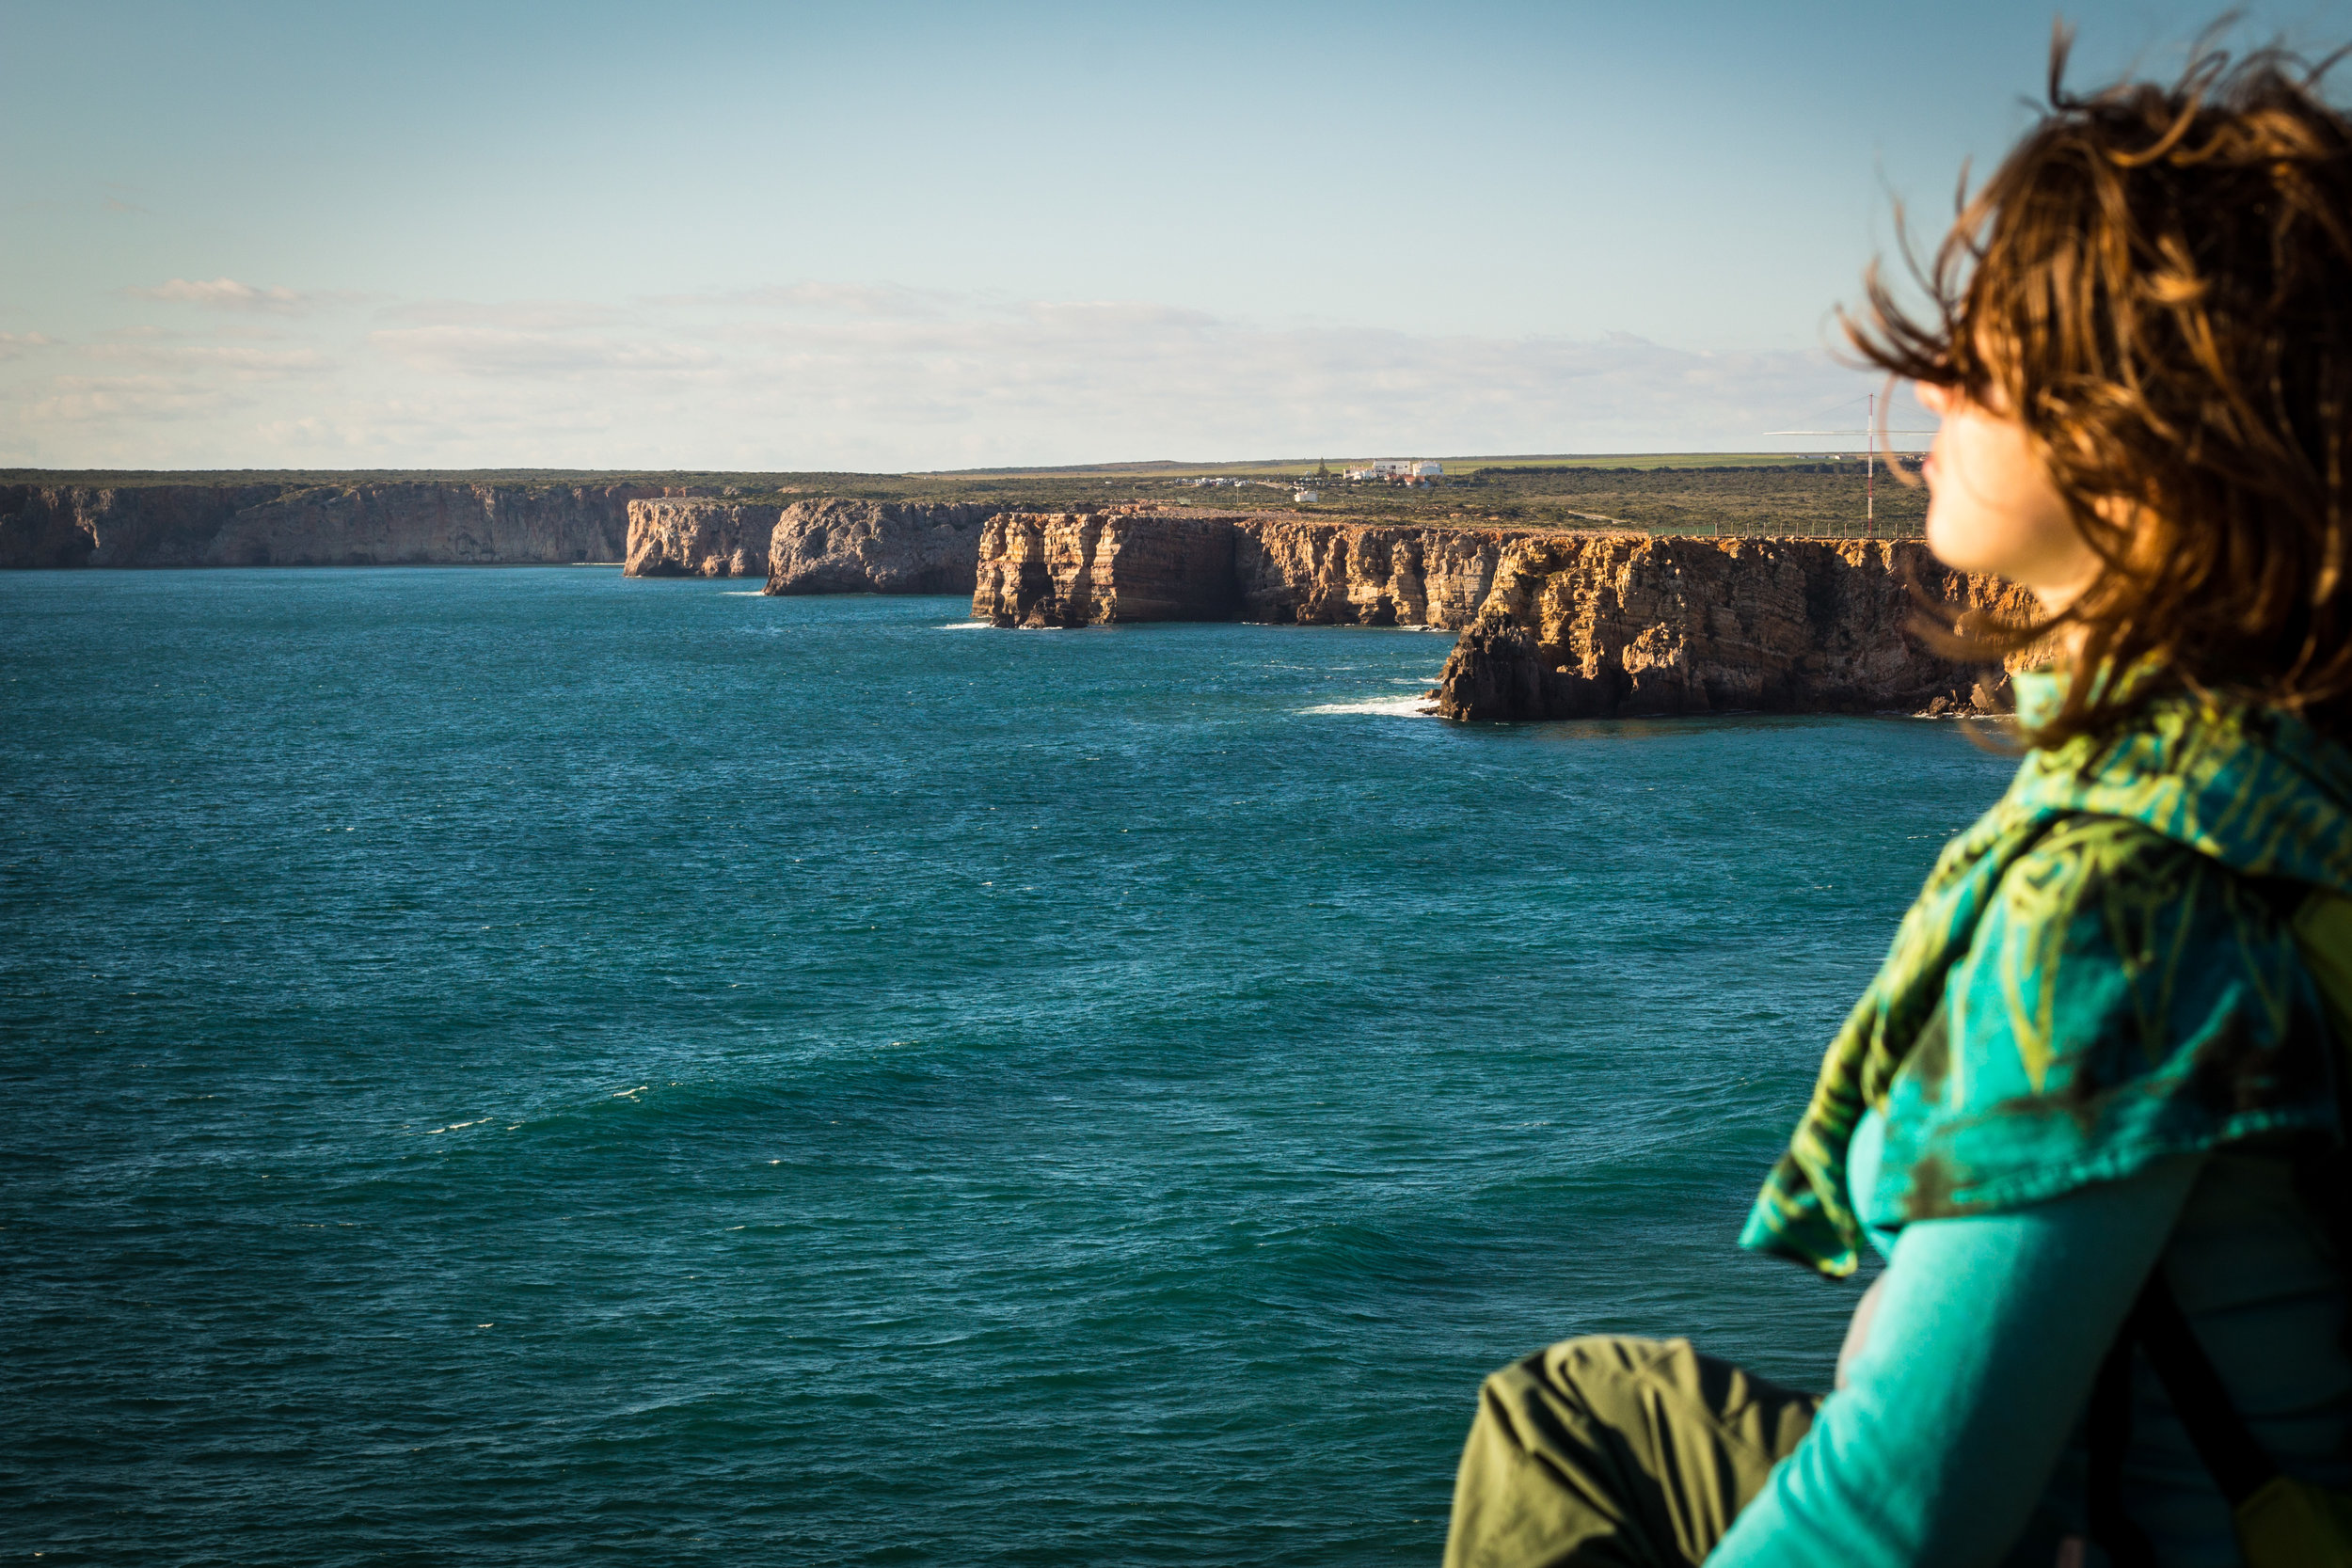 Woman on cliffs breathing - at the top of the Why Breathing Matters page